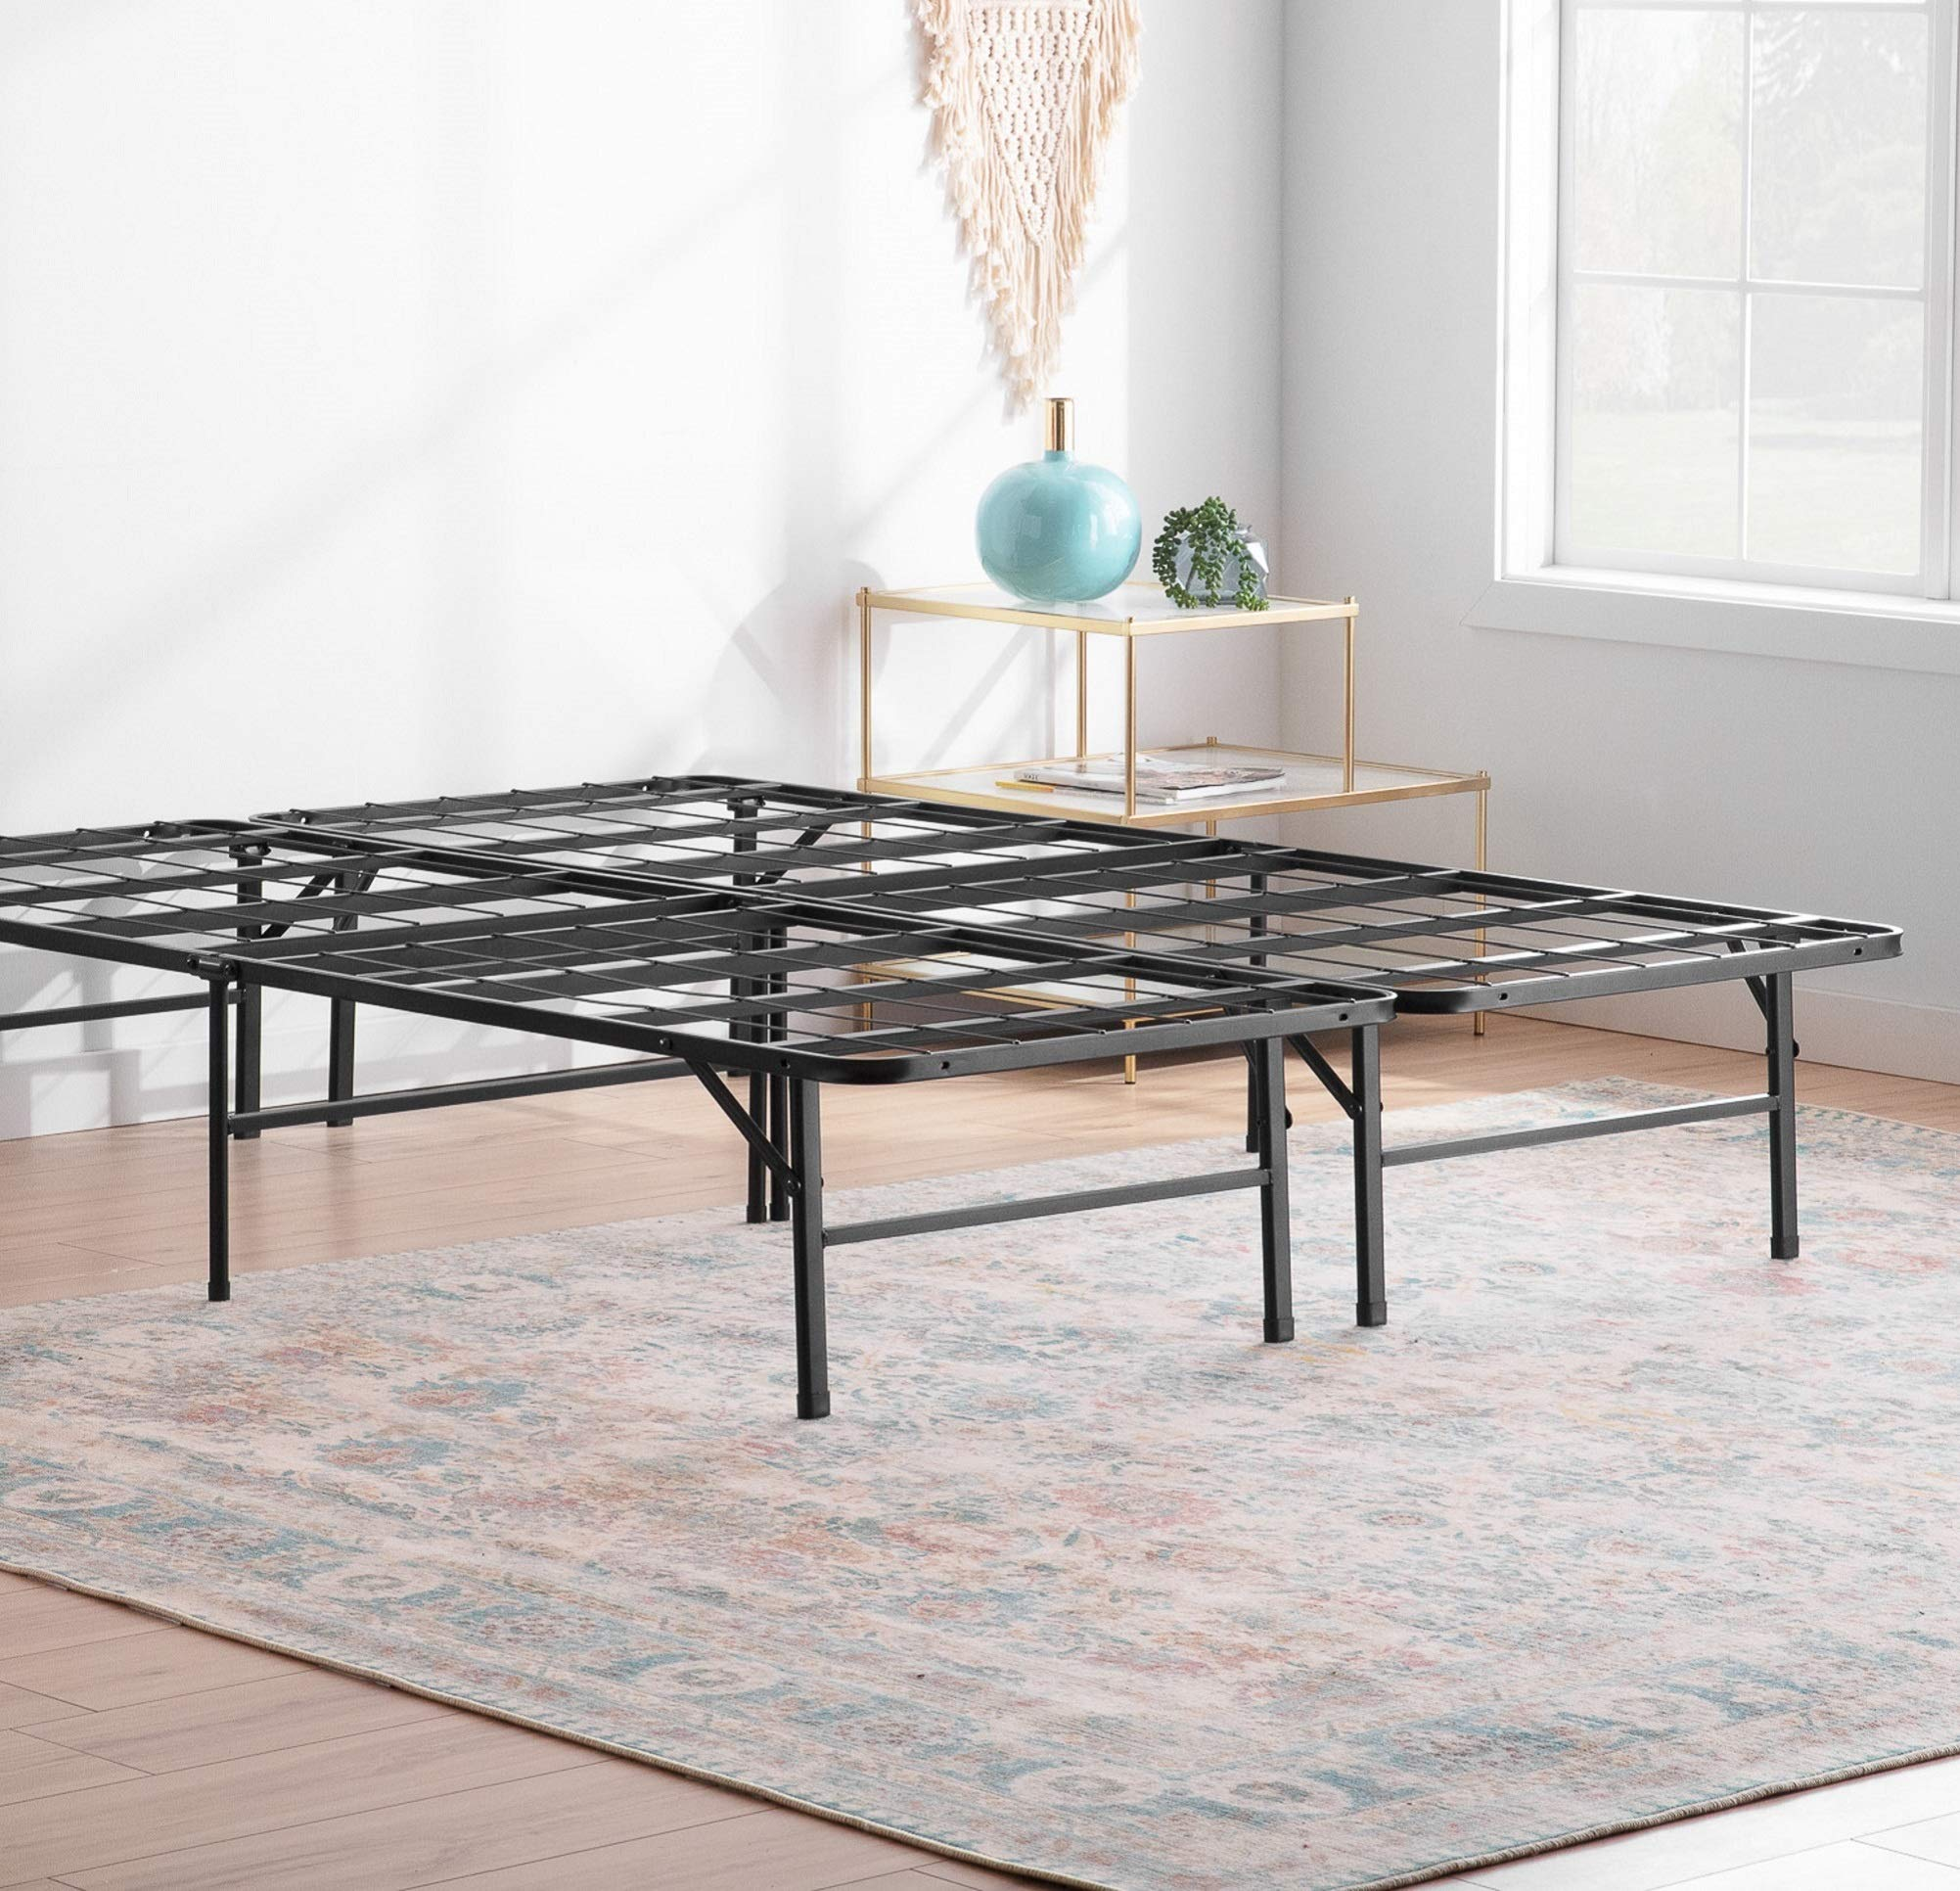 Linenspa 14 Inch Folding Metal Platform Bed Frame - 13 Inches of Clearance - Tons of Under Bed Storage - Heavy Duty Construction - 5 Minute Assembly - Cal King